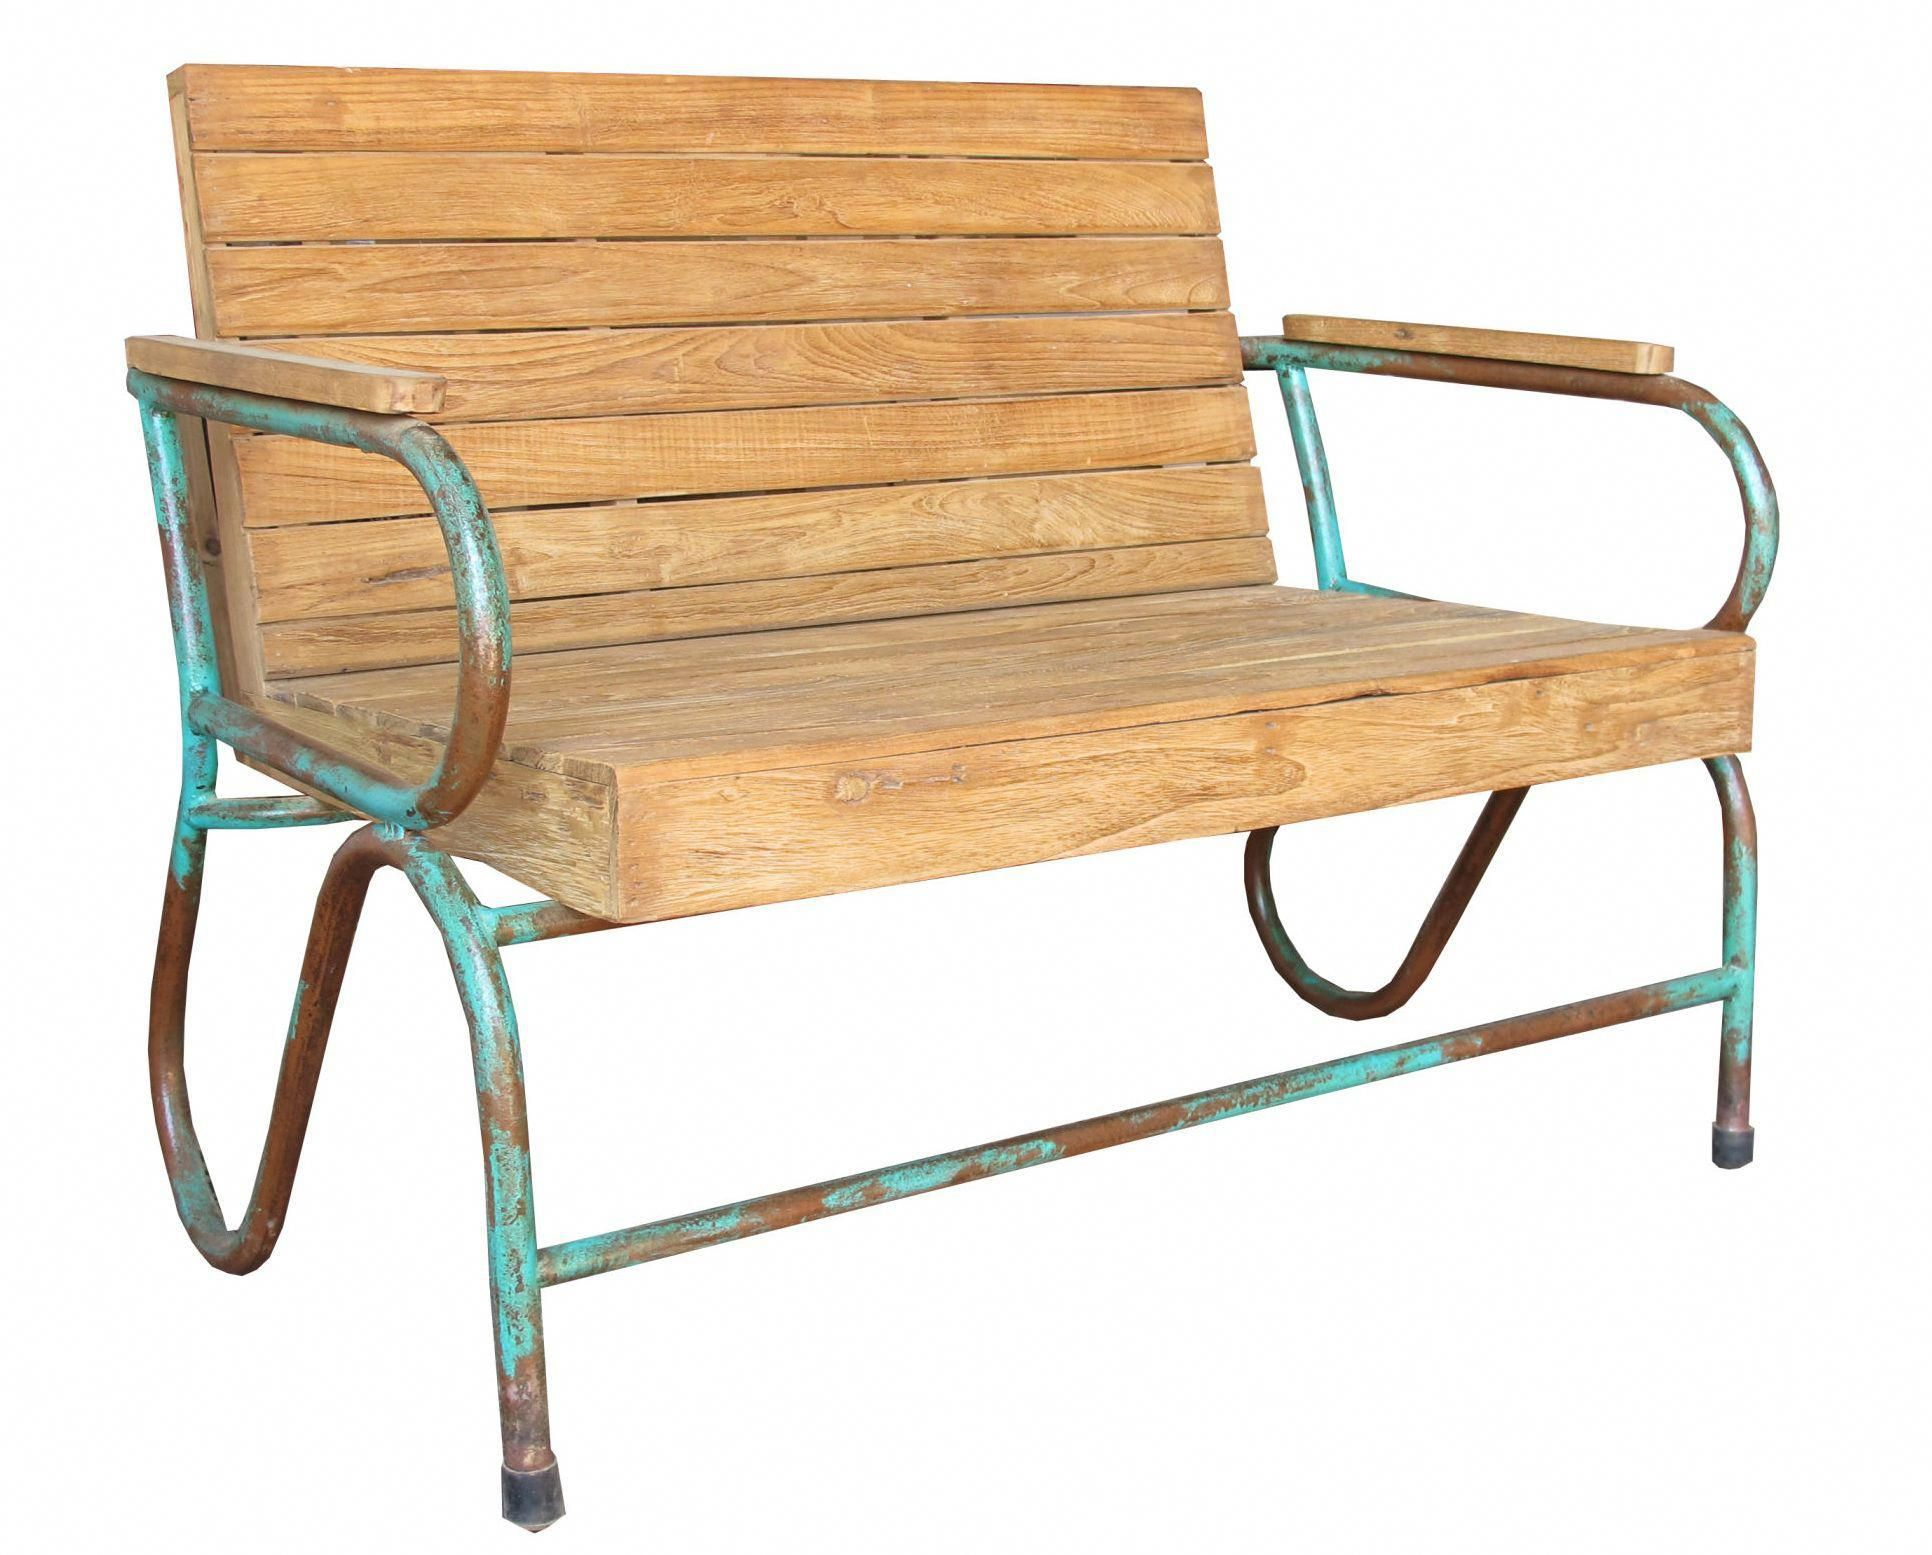 Miraculous The Most Awesome Garden Bench Round Ideas 2499758444 Machost Co Dining Chair Design Ideas Machostcouk